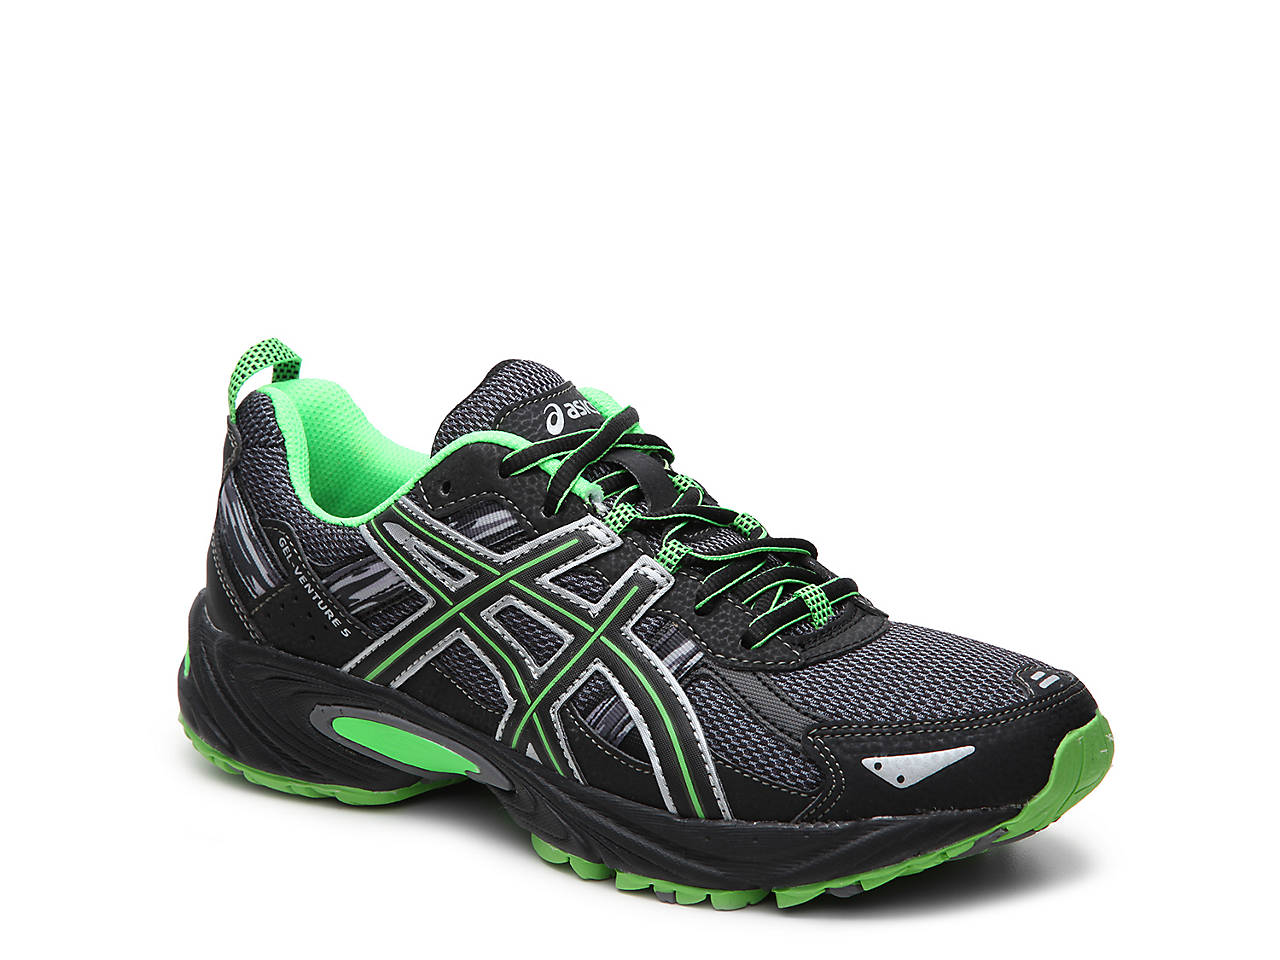 GEL Venture 5 Trail Running Shoe Men's